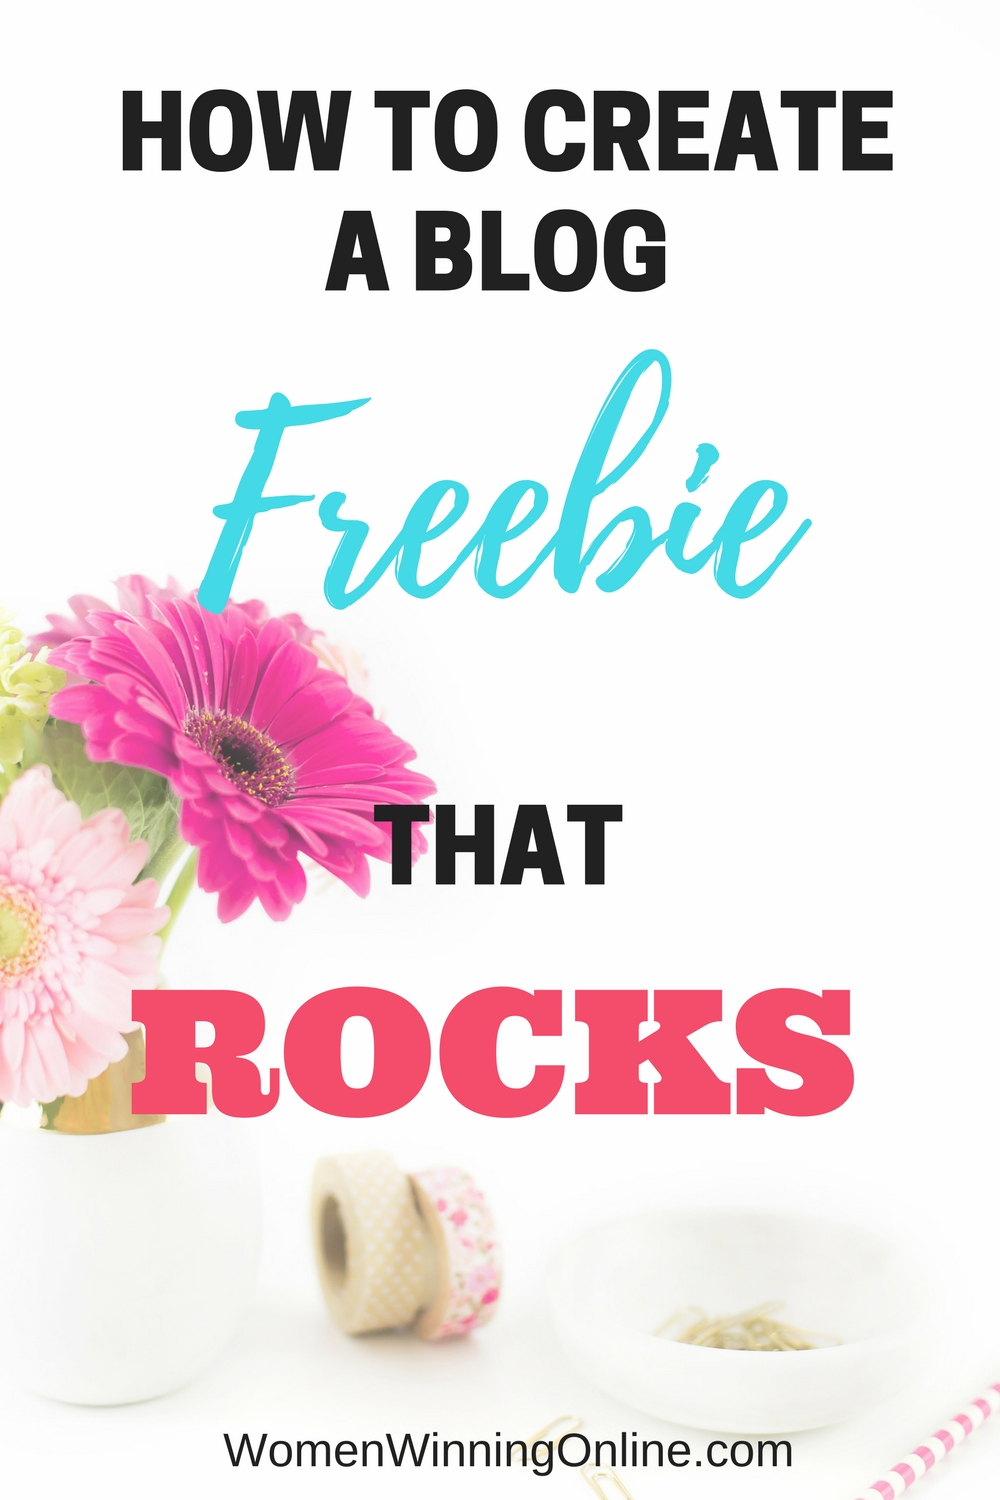 Do you need a good freebie for your blog? Is your blog opt-in offer not working at all?! Check out these 7 steps to create an awesome blog opt-in offer that rocks!